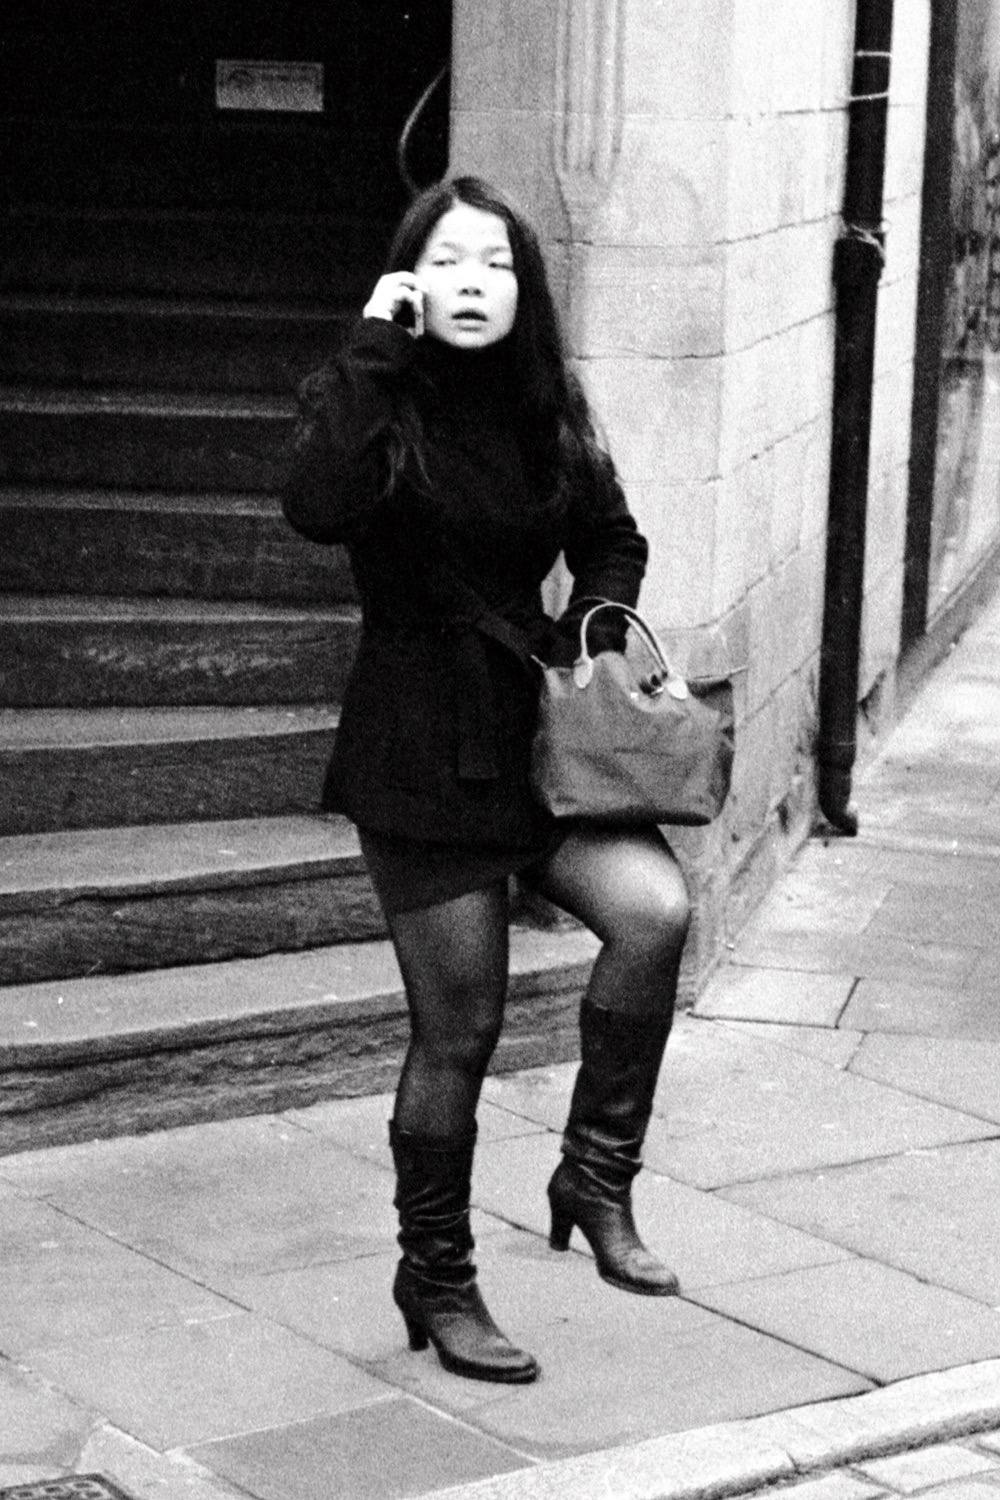 asian lady talks on phone rummages in handbag and stands on one leg chester street photography uk photographer kevin shelley prints for sale leica m2 voigtlander 50 1.5